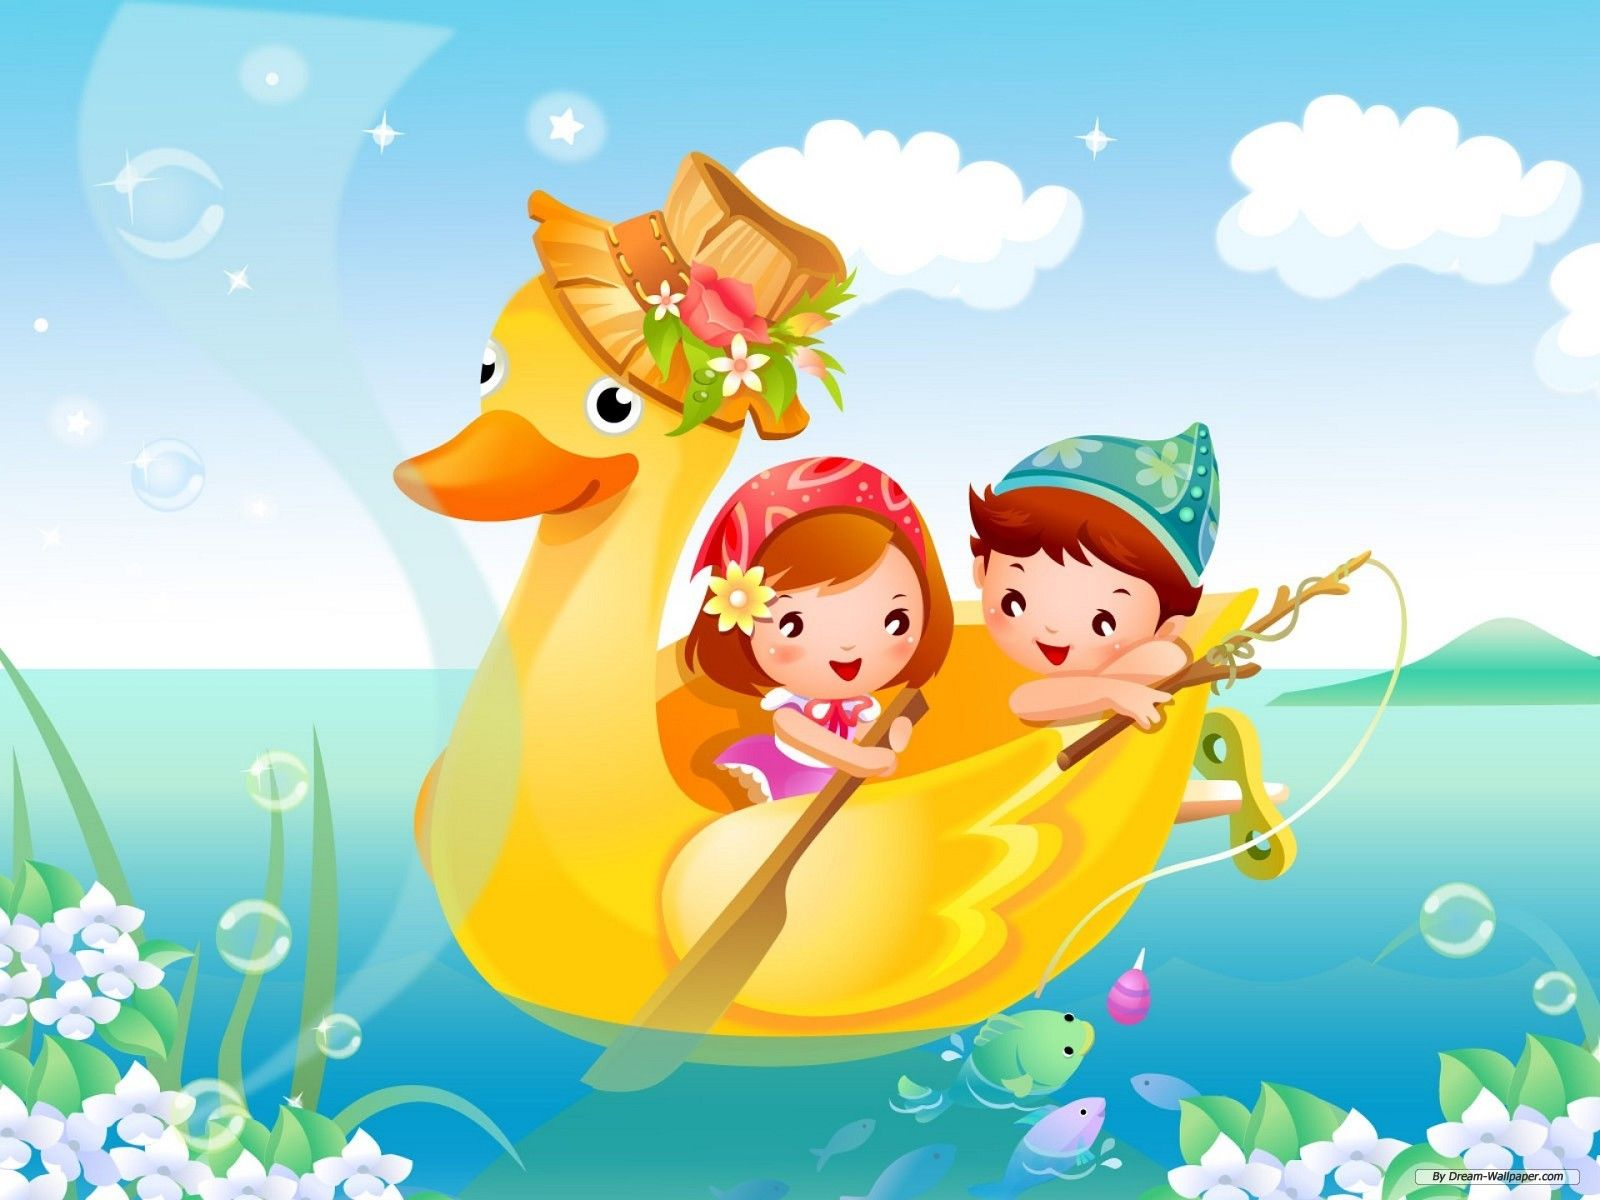 In summer hd wallpaper download cartoon wallpaper html code - Download Wallpapers Collection For Free Download Hd Wallpapers Pinterest Wallpaper